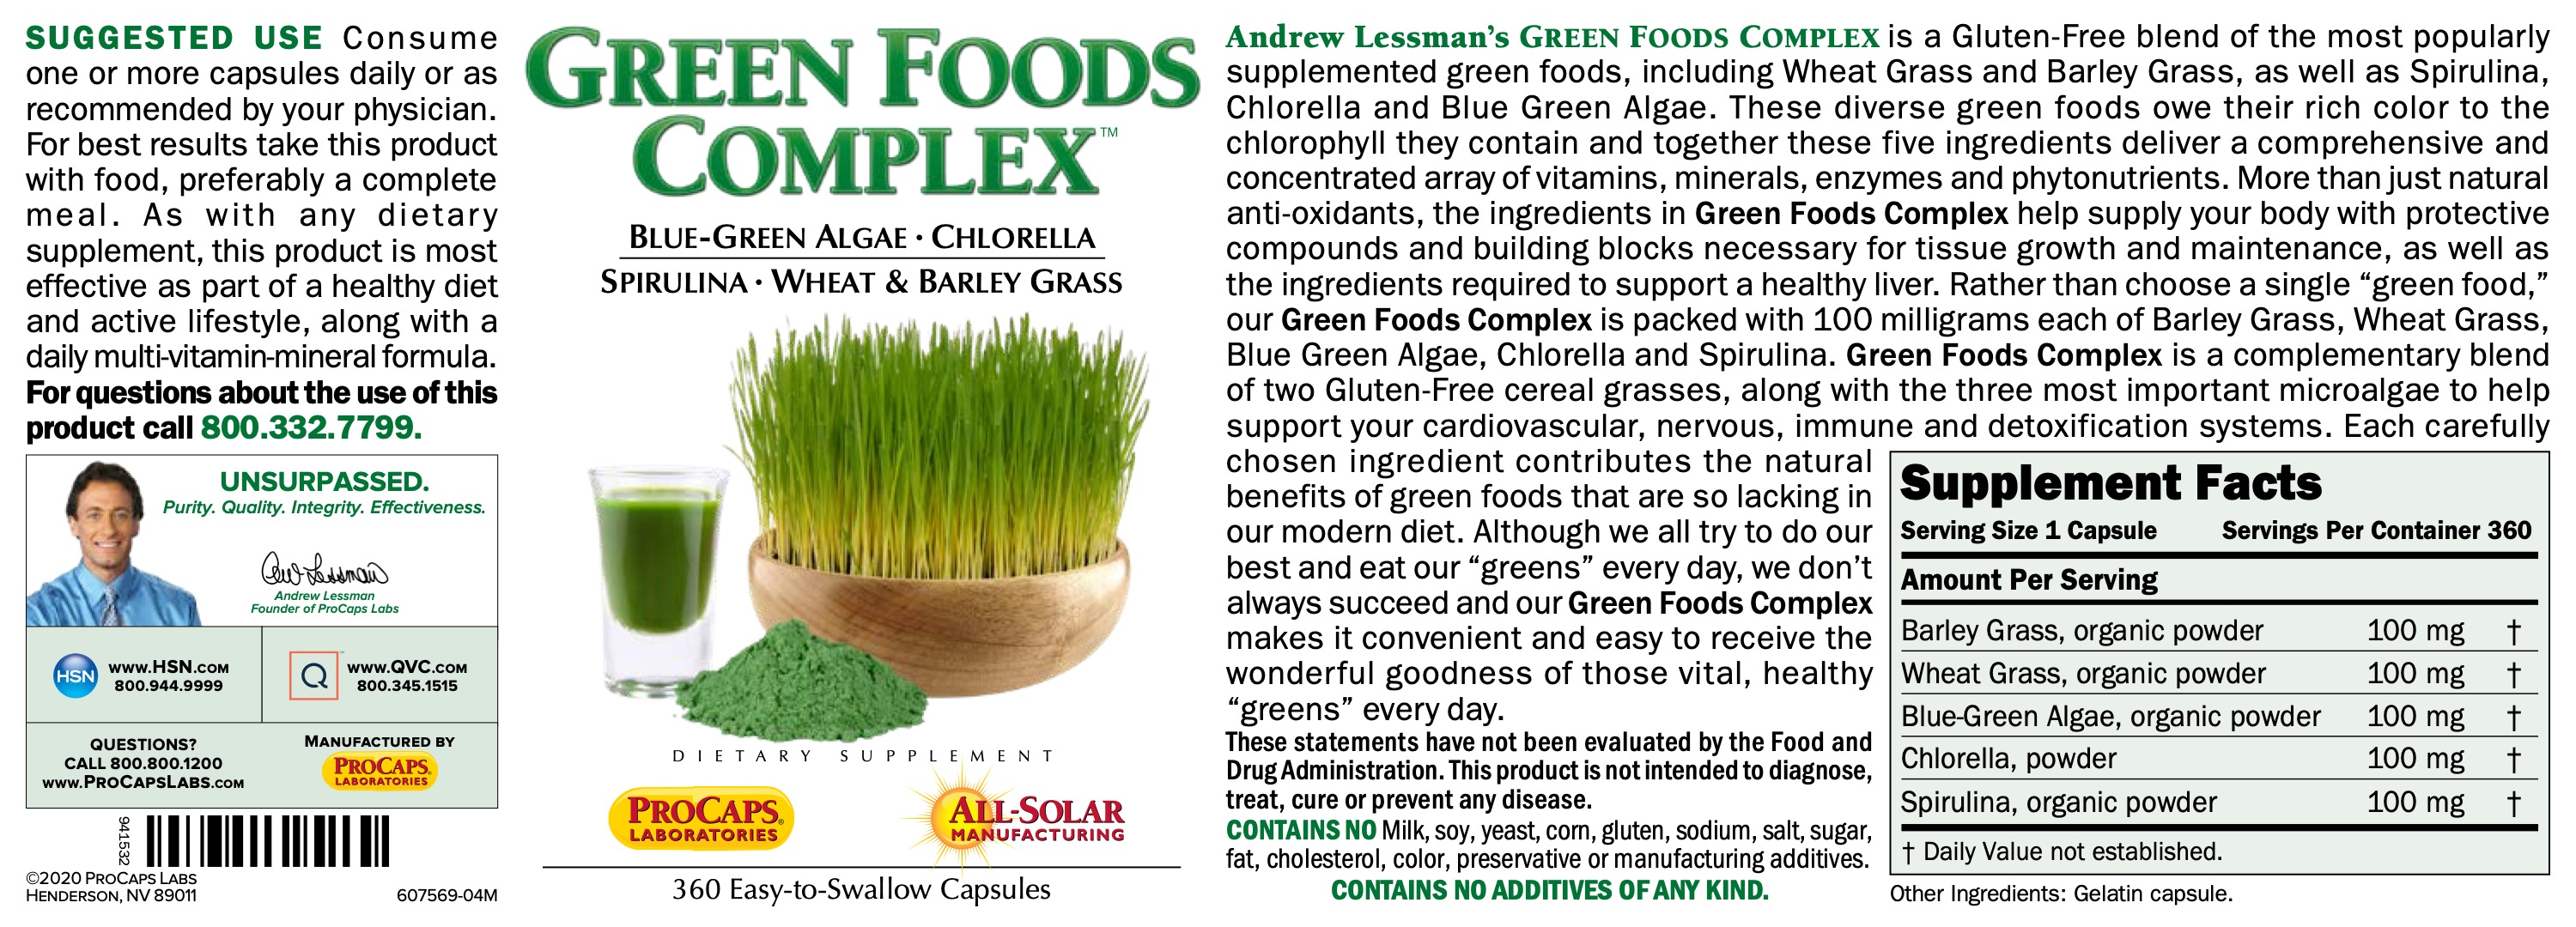 Green-Foods-Complex-Capsules-Anti-oxidants